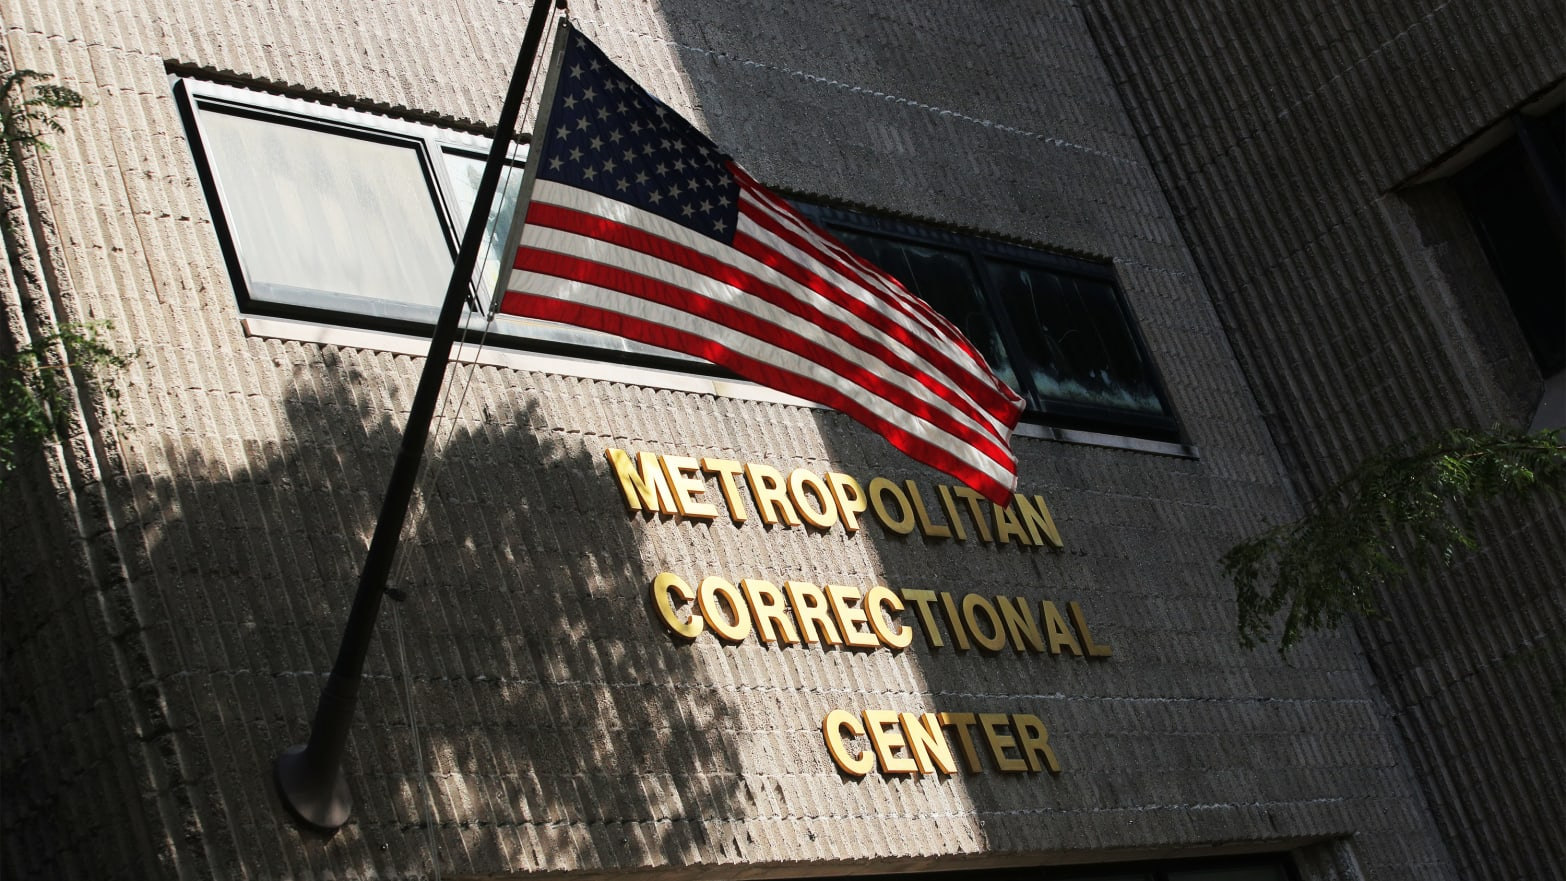 Image result for IMAGES OF Metropolitan Correctional Center in Manhattan